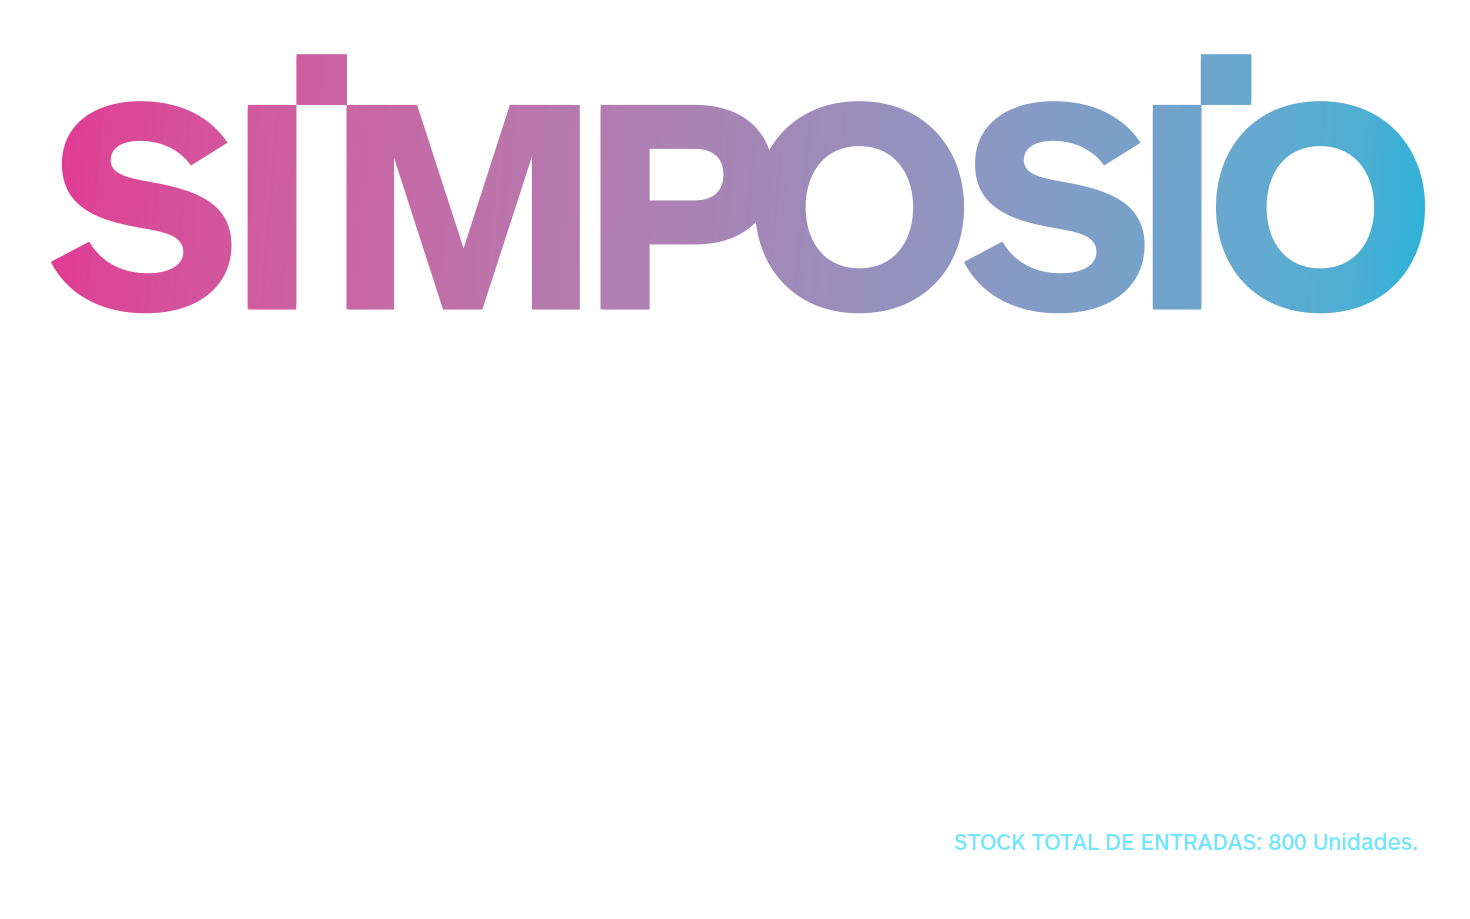 https://simposiopyme.paisdigital.org/wp-content/uploads/2019/09/logo-simposio2-5.png